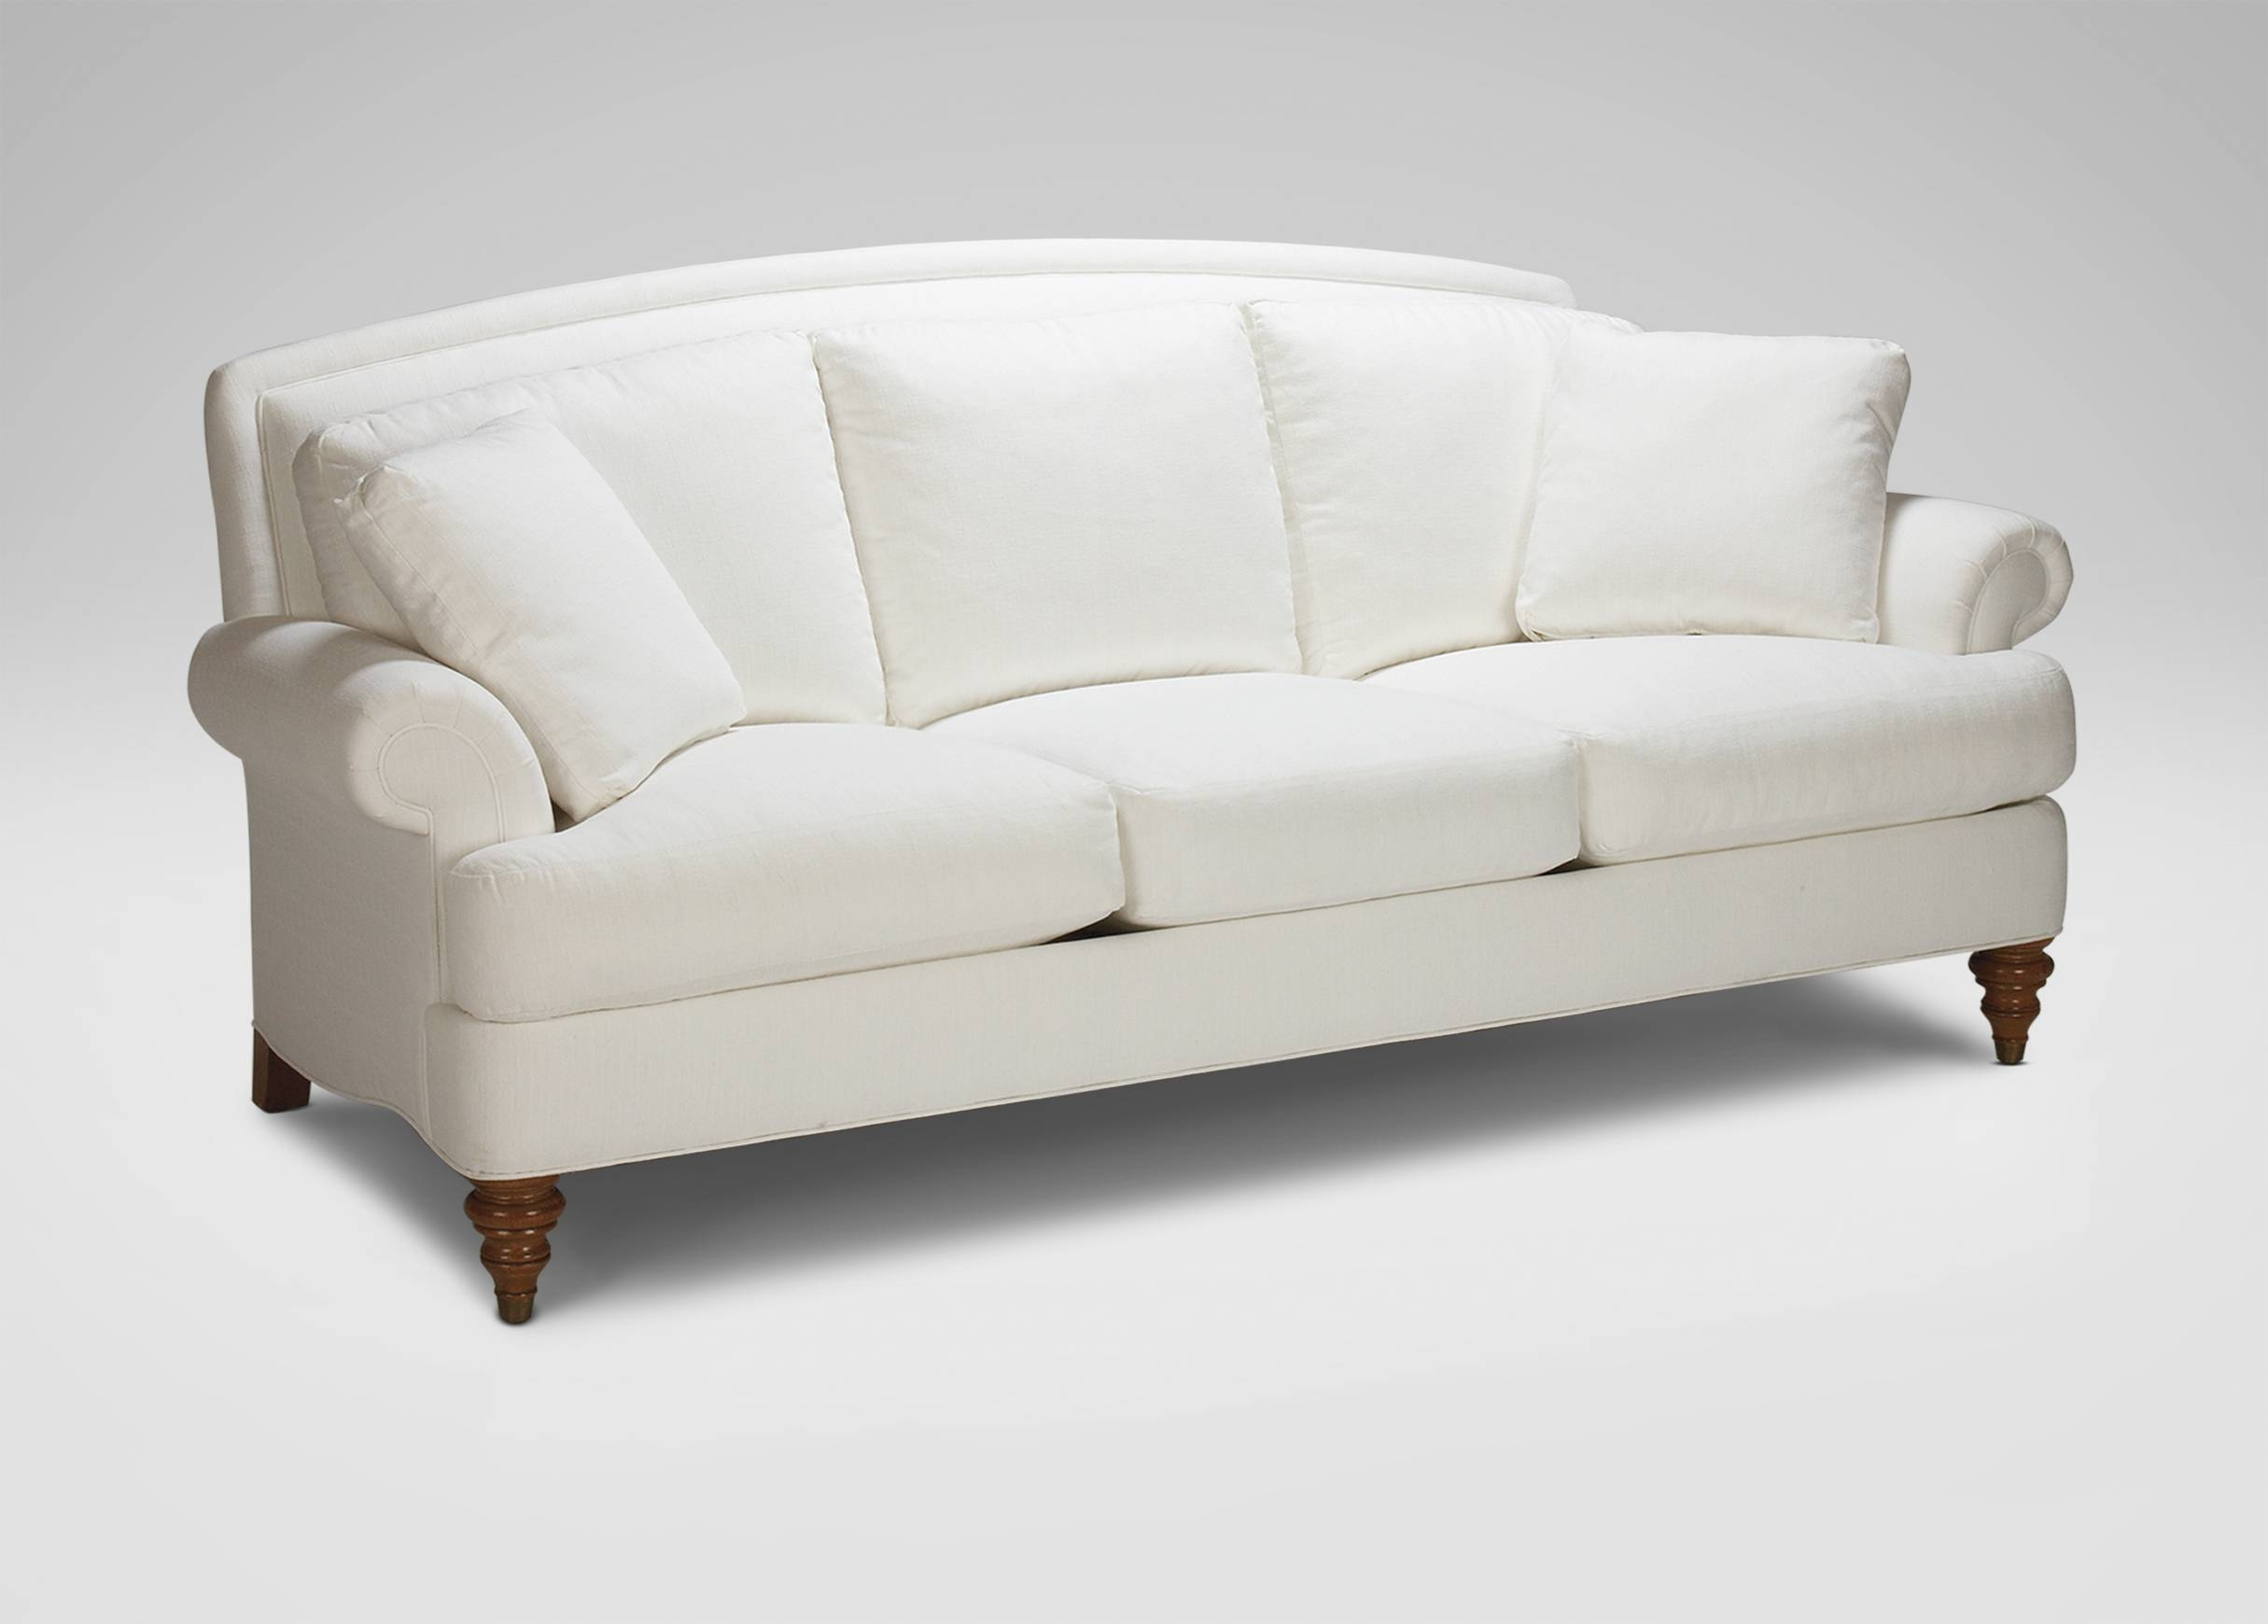 Furniture: Ethan Allen Leather Furniture For Excellent Living Room regarding Ethan Allen Chesterfield Sofas (Image 9 of 15)